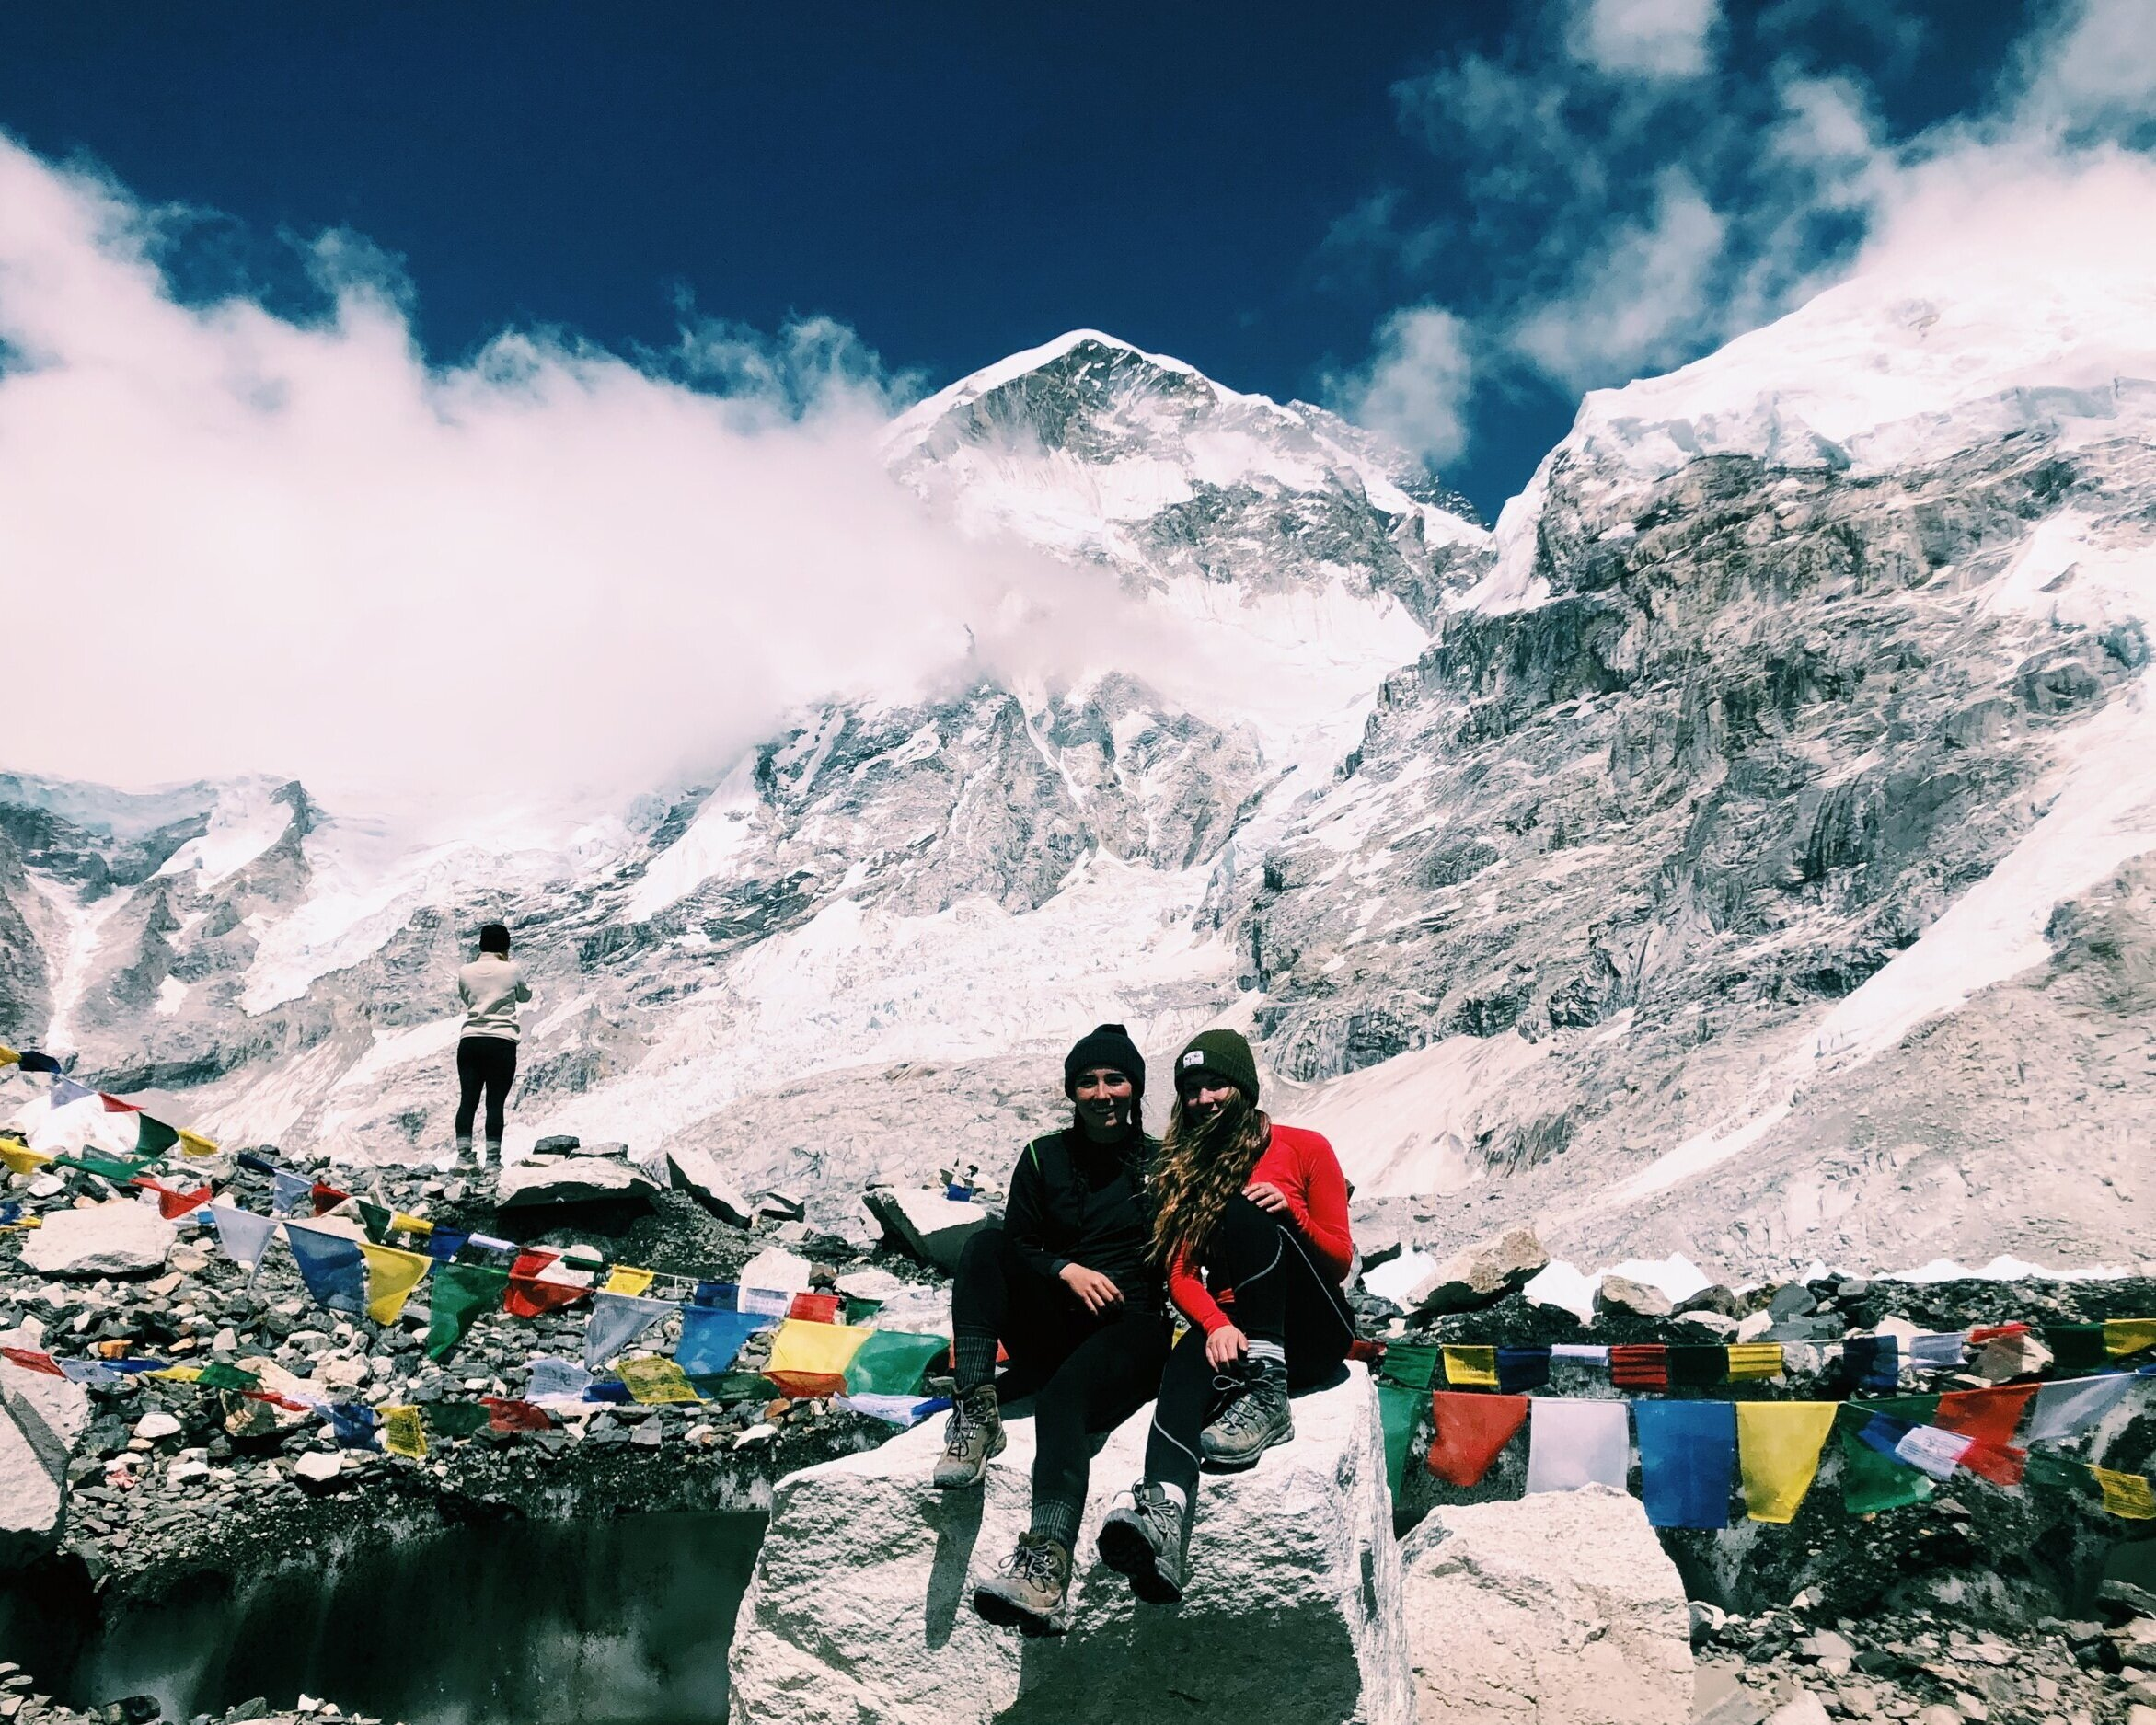 EVEREST BASE CAMP TREK - Trek through the majestic Himalayan Peaks on this incredible once-in-a-lifetime challenge.15 DAYS | EXTREME | FIND OUT MORE